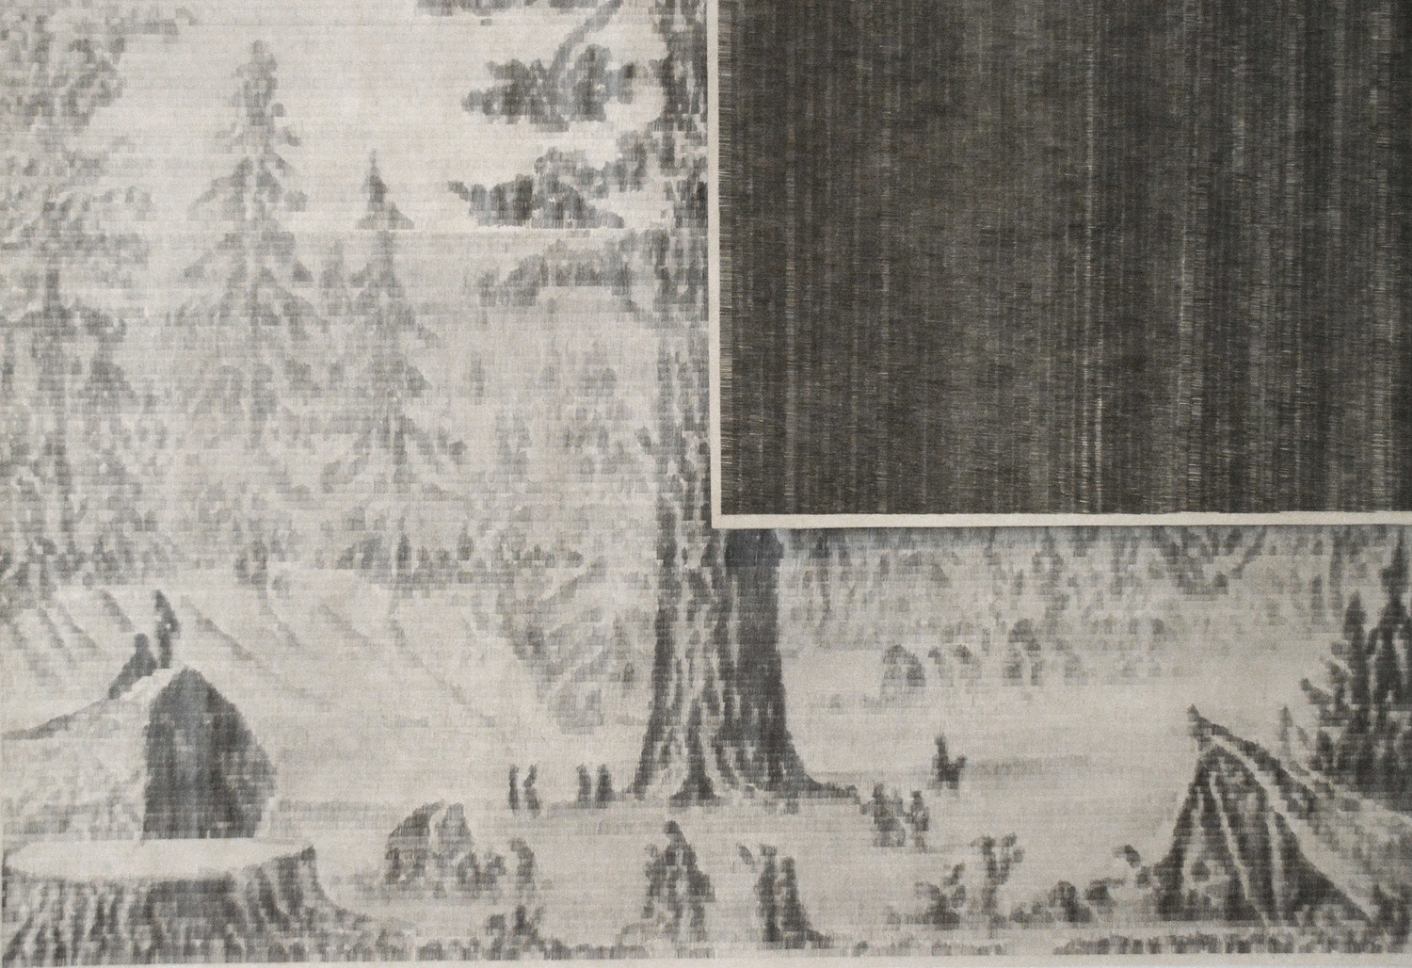 Arbol  (detail of diptych), 2014, Mechanical pencil on newsprint. 45 x 59 inches. Image courtesy of the artist.